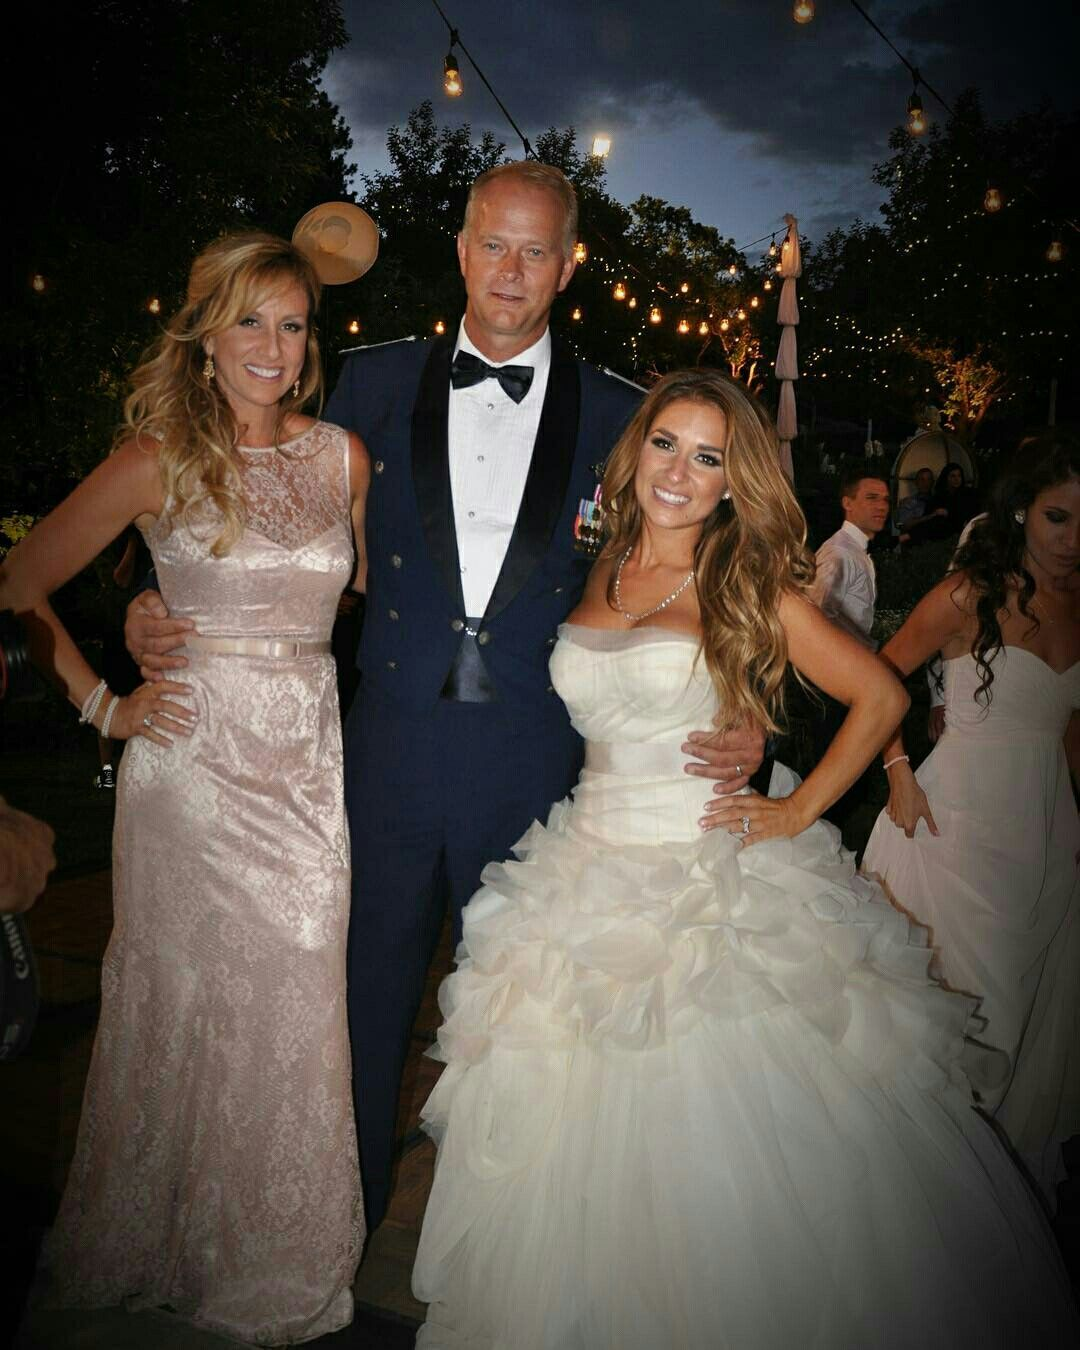 Wedding Gown For Parents: Jessie And Her Parents #tbt